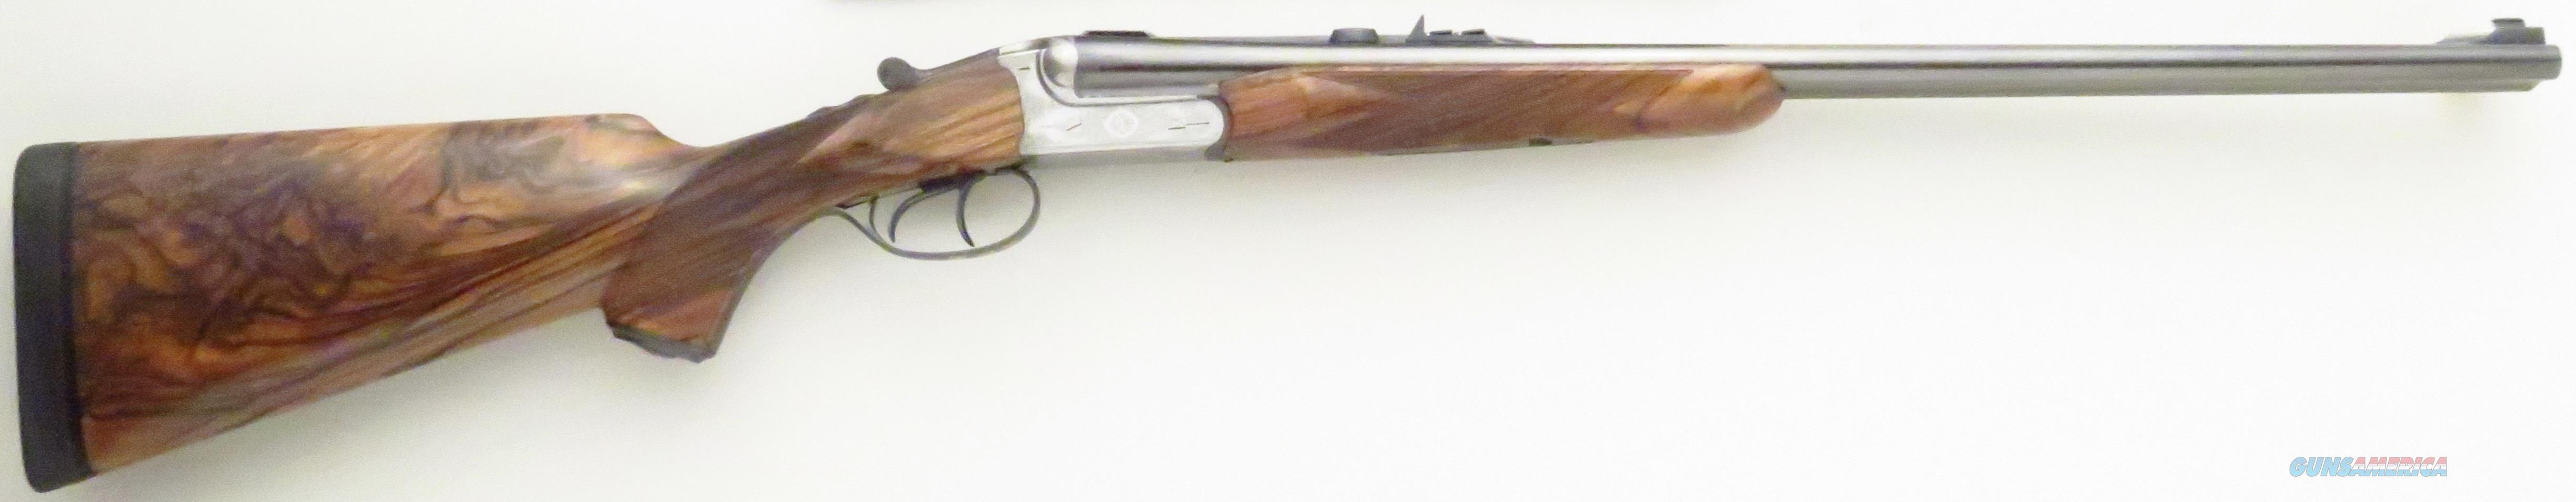 Rigby .35 Rigby SxS double rifle, Barry Lee Hands engraved, 500 rounds custom ammo  Guns > Rifles > Double Rifles (Misc.)